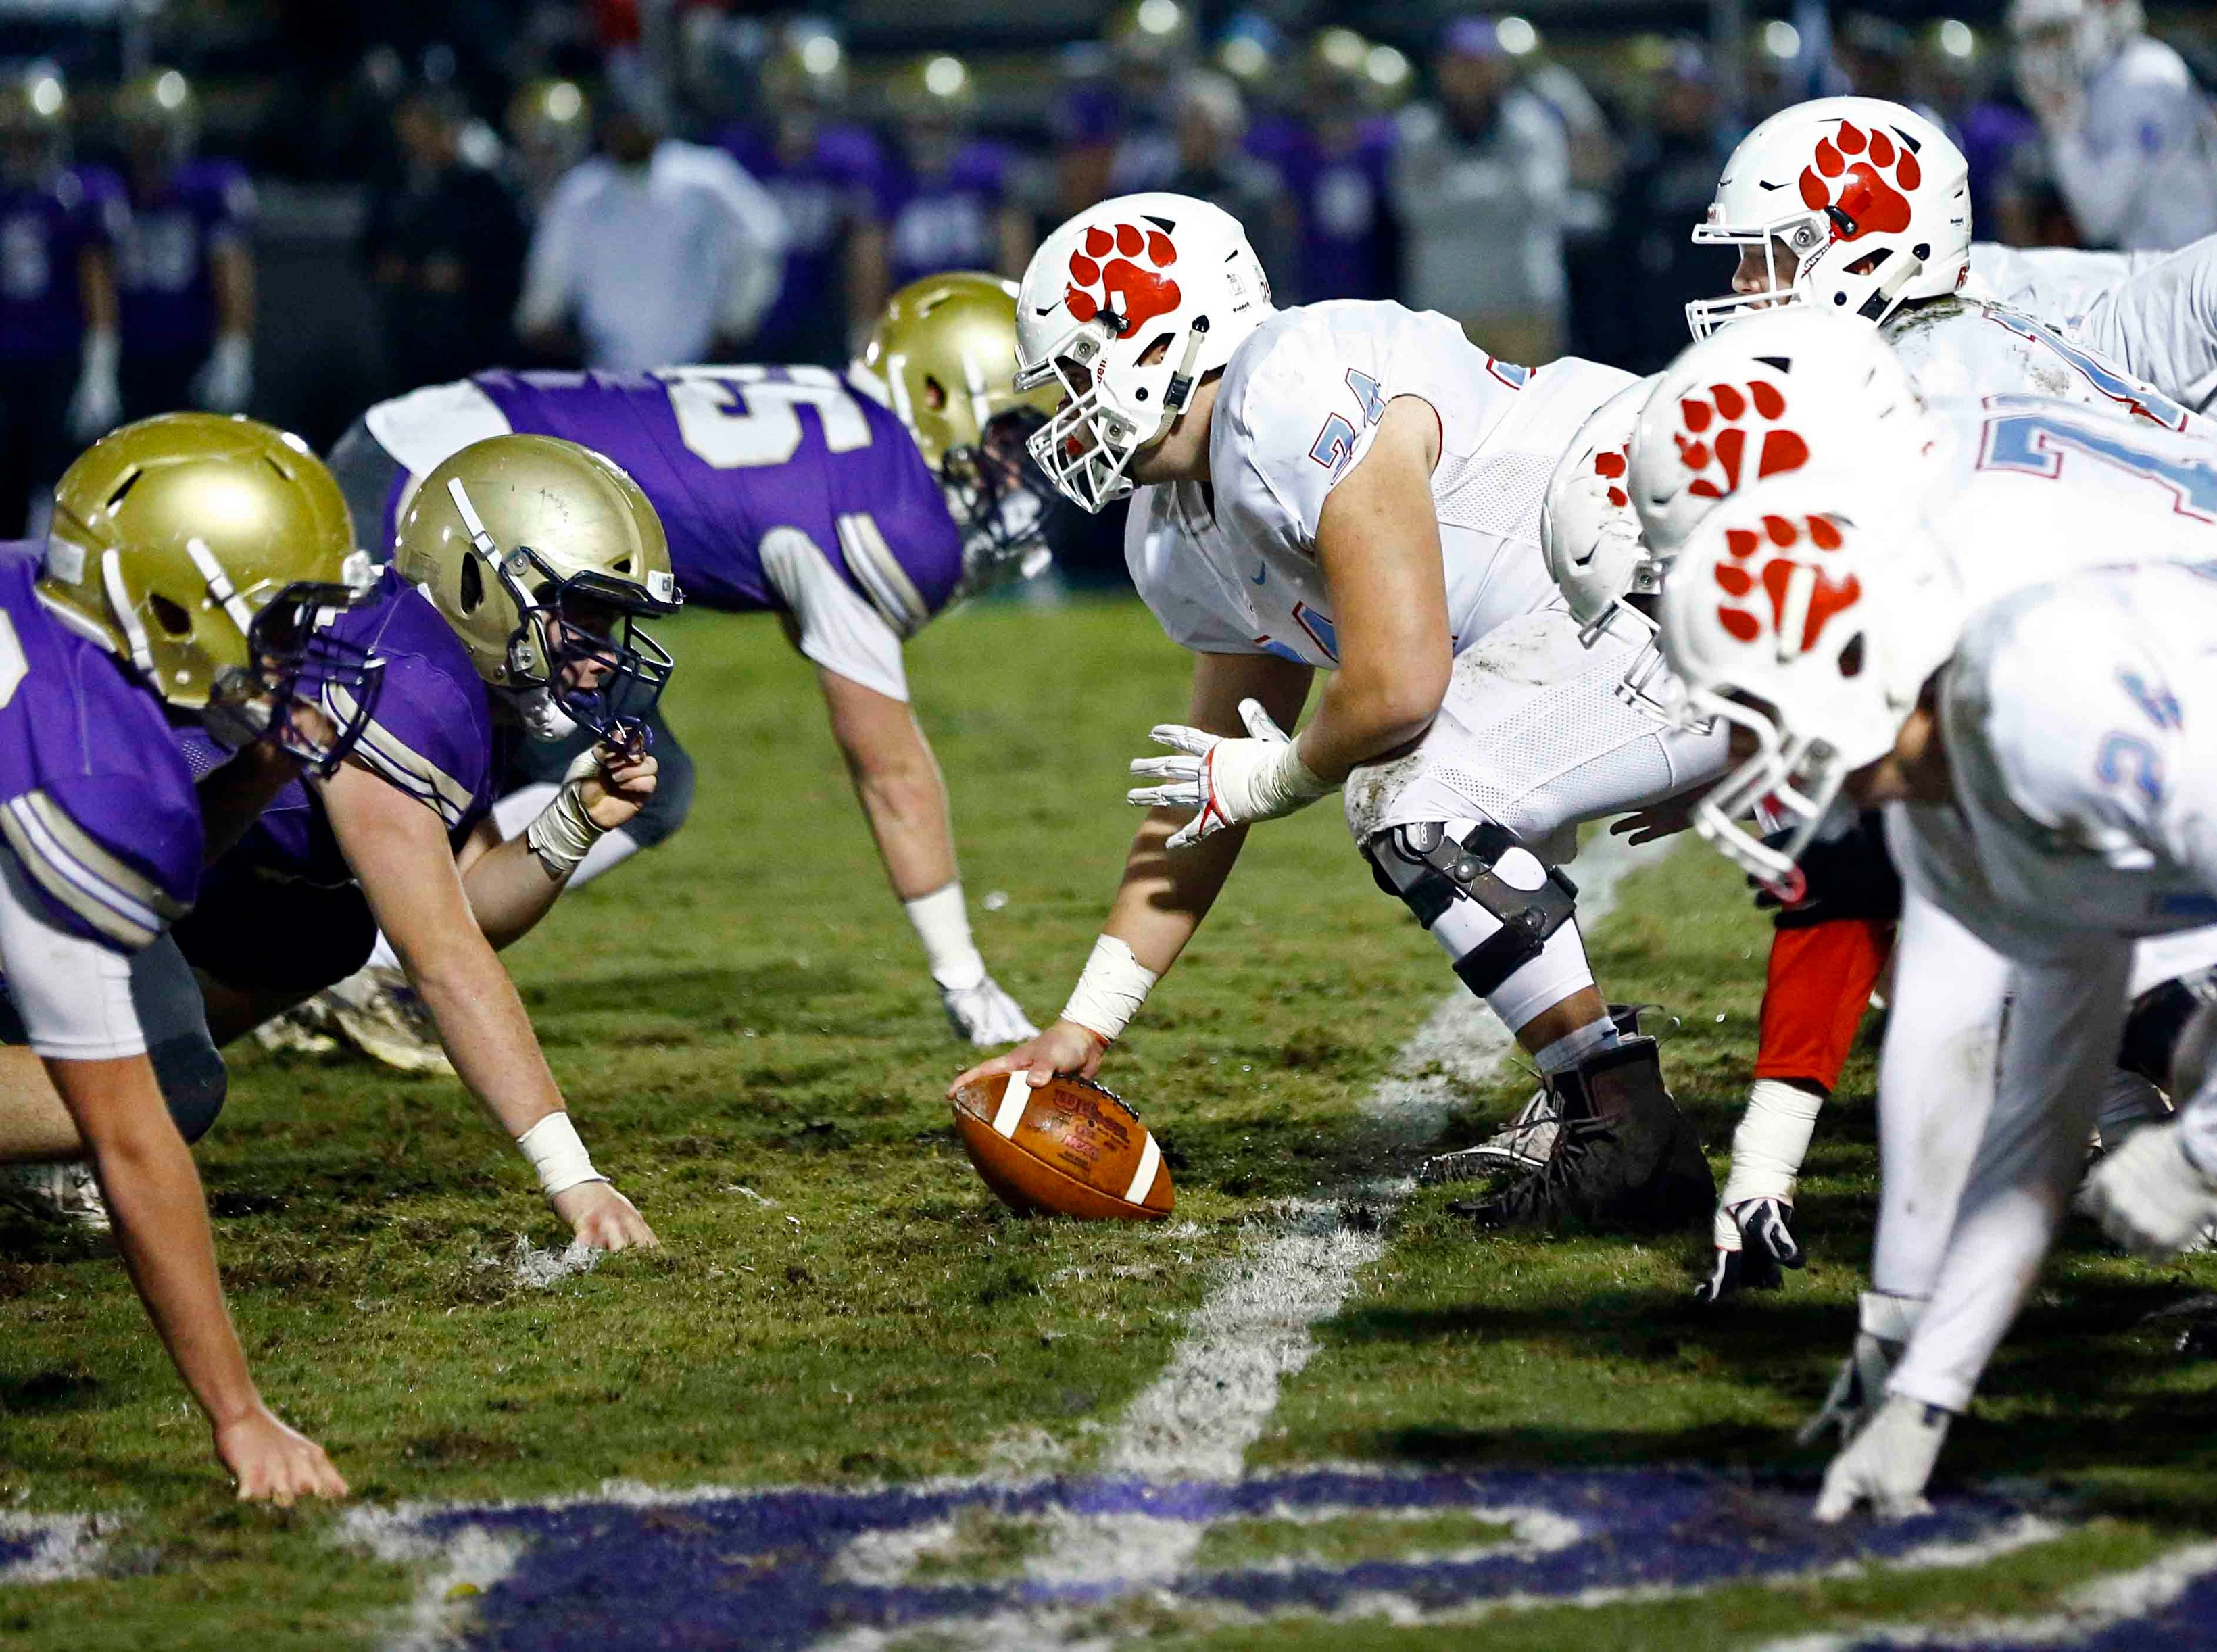 CPA, left, lines up against USJ during their game Friday, Nov. 2, 2018, in Nashville, Tenn.